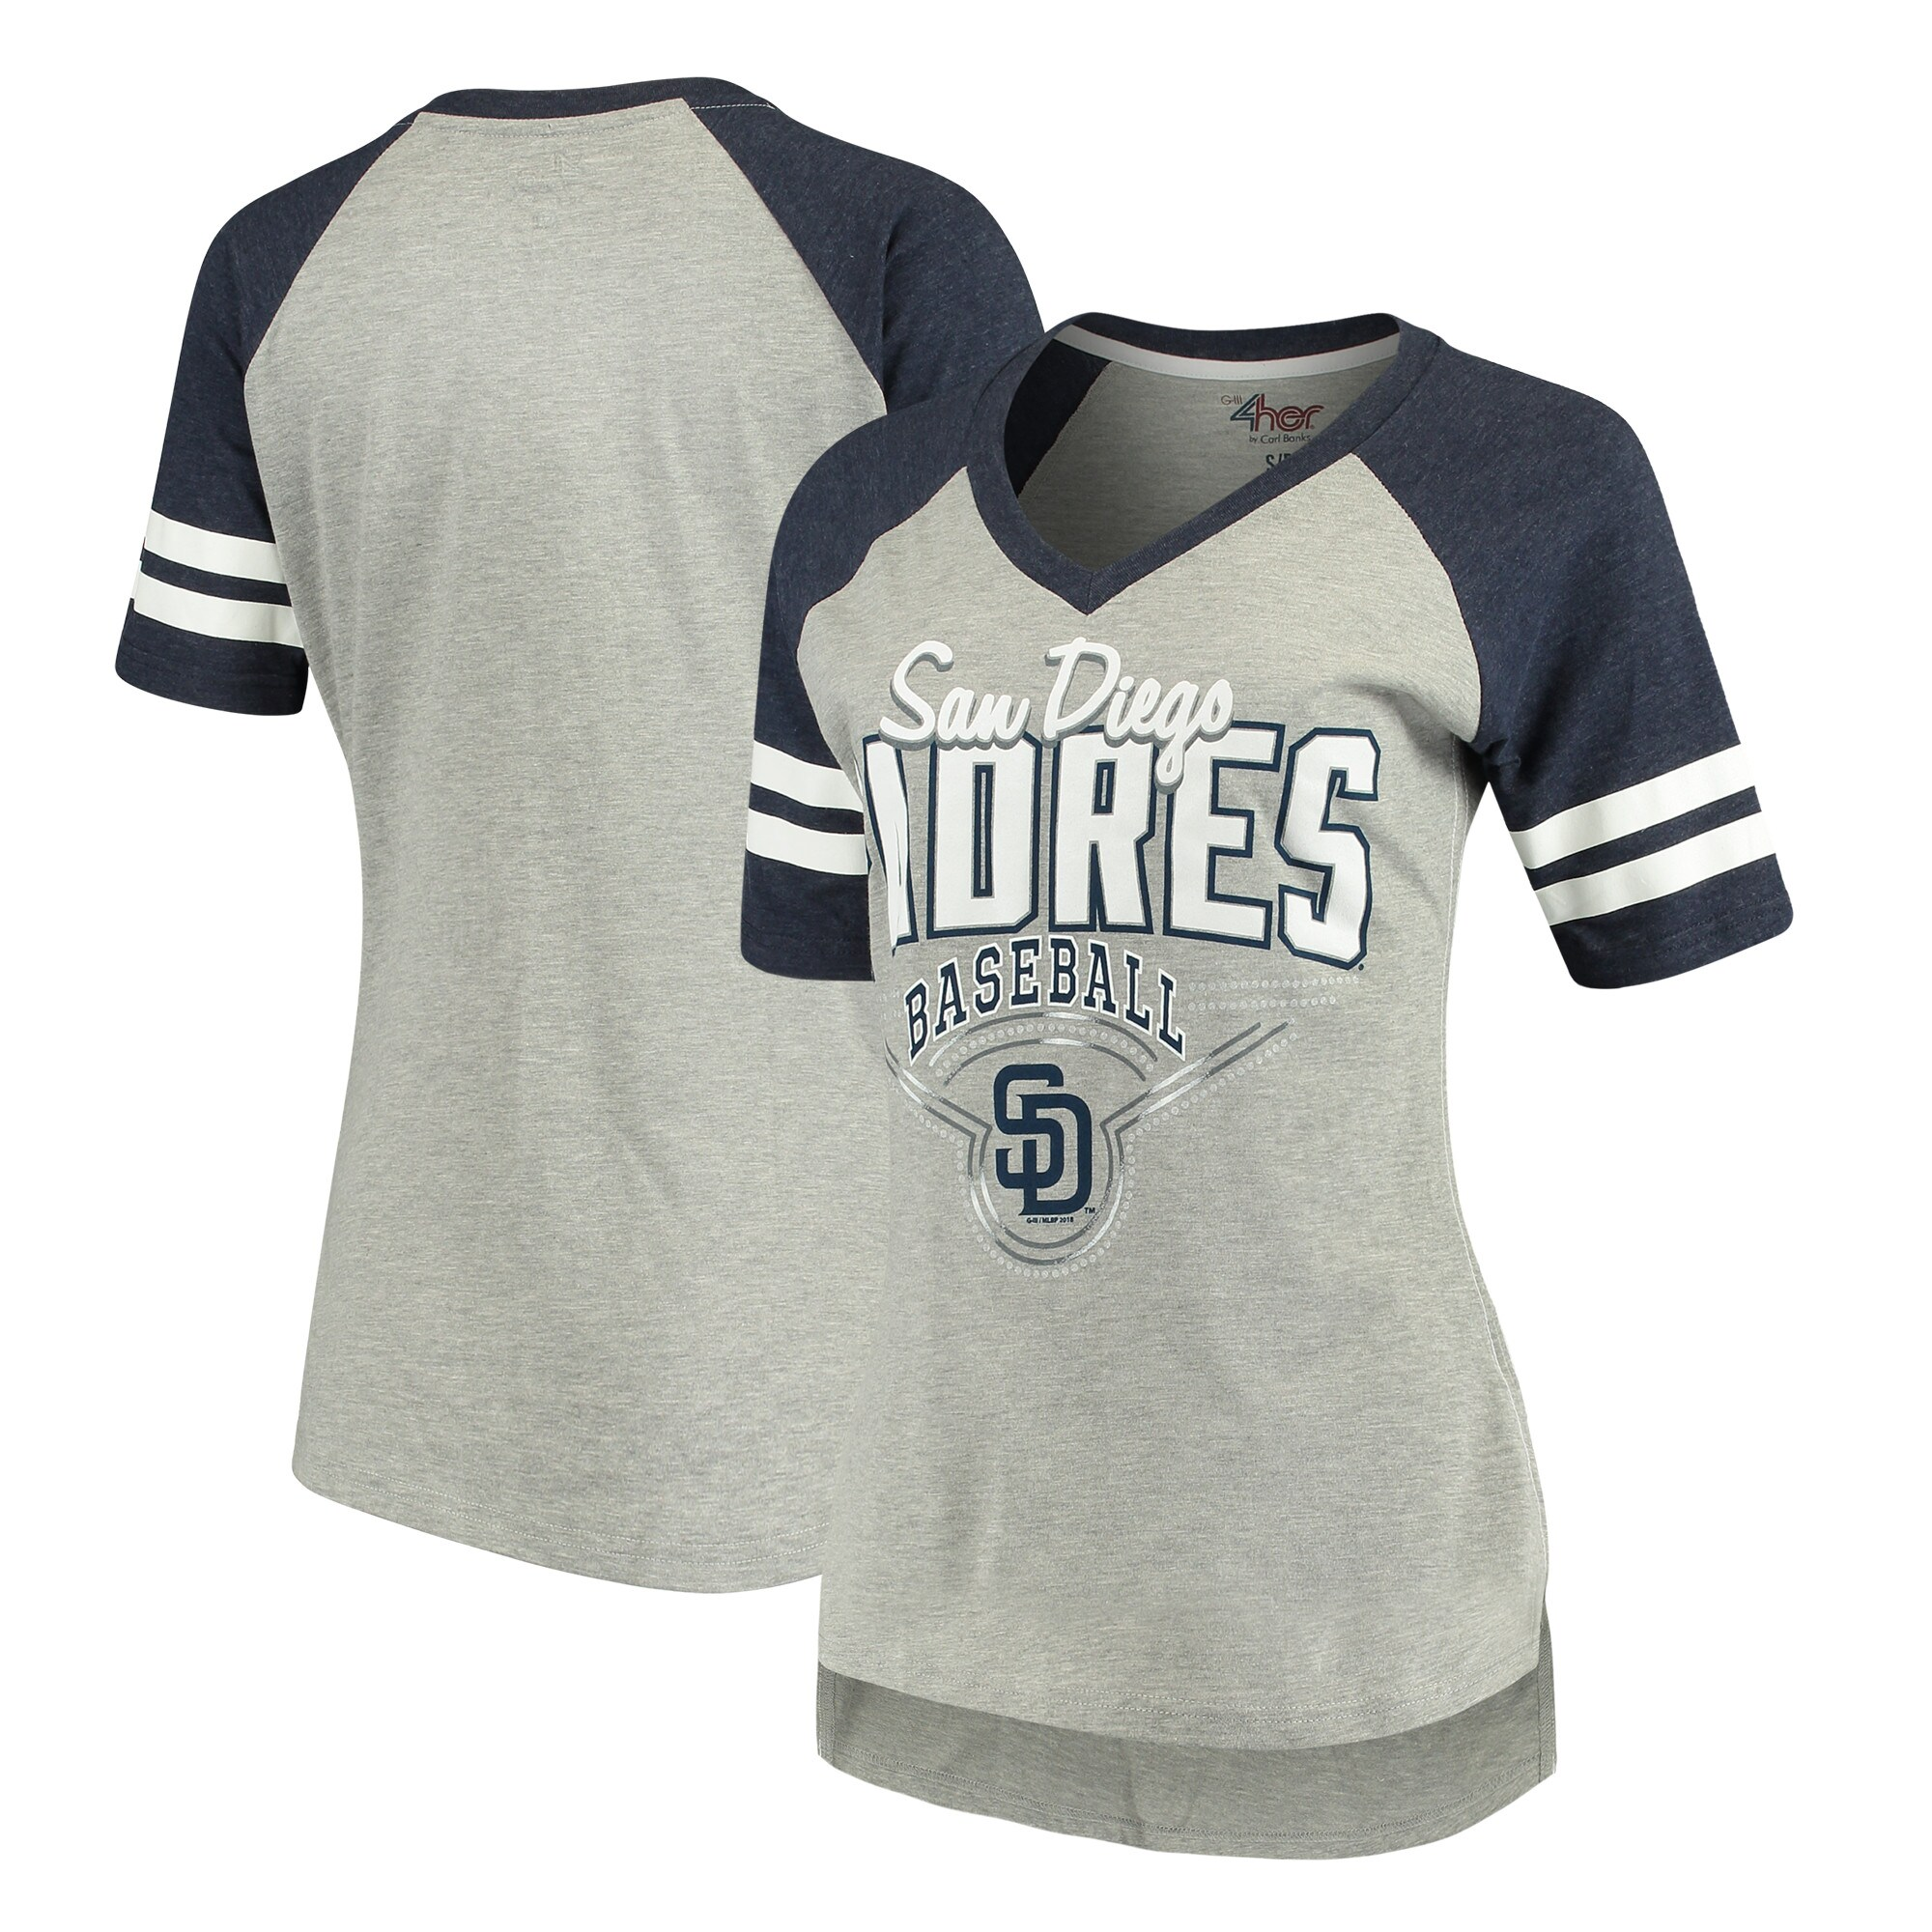 San Diego Padres G-III 4Her by Carl Banks Women's Goal Line T-Shirt - Heathered Gray/Navy